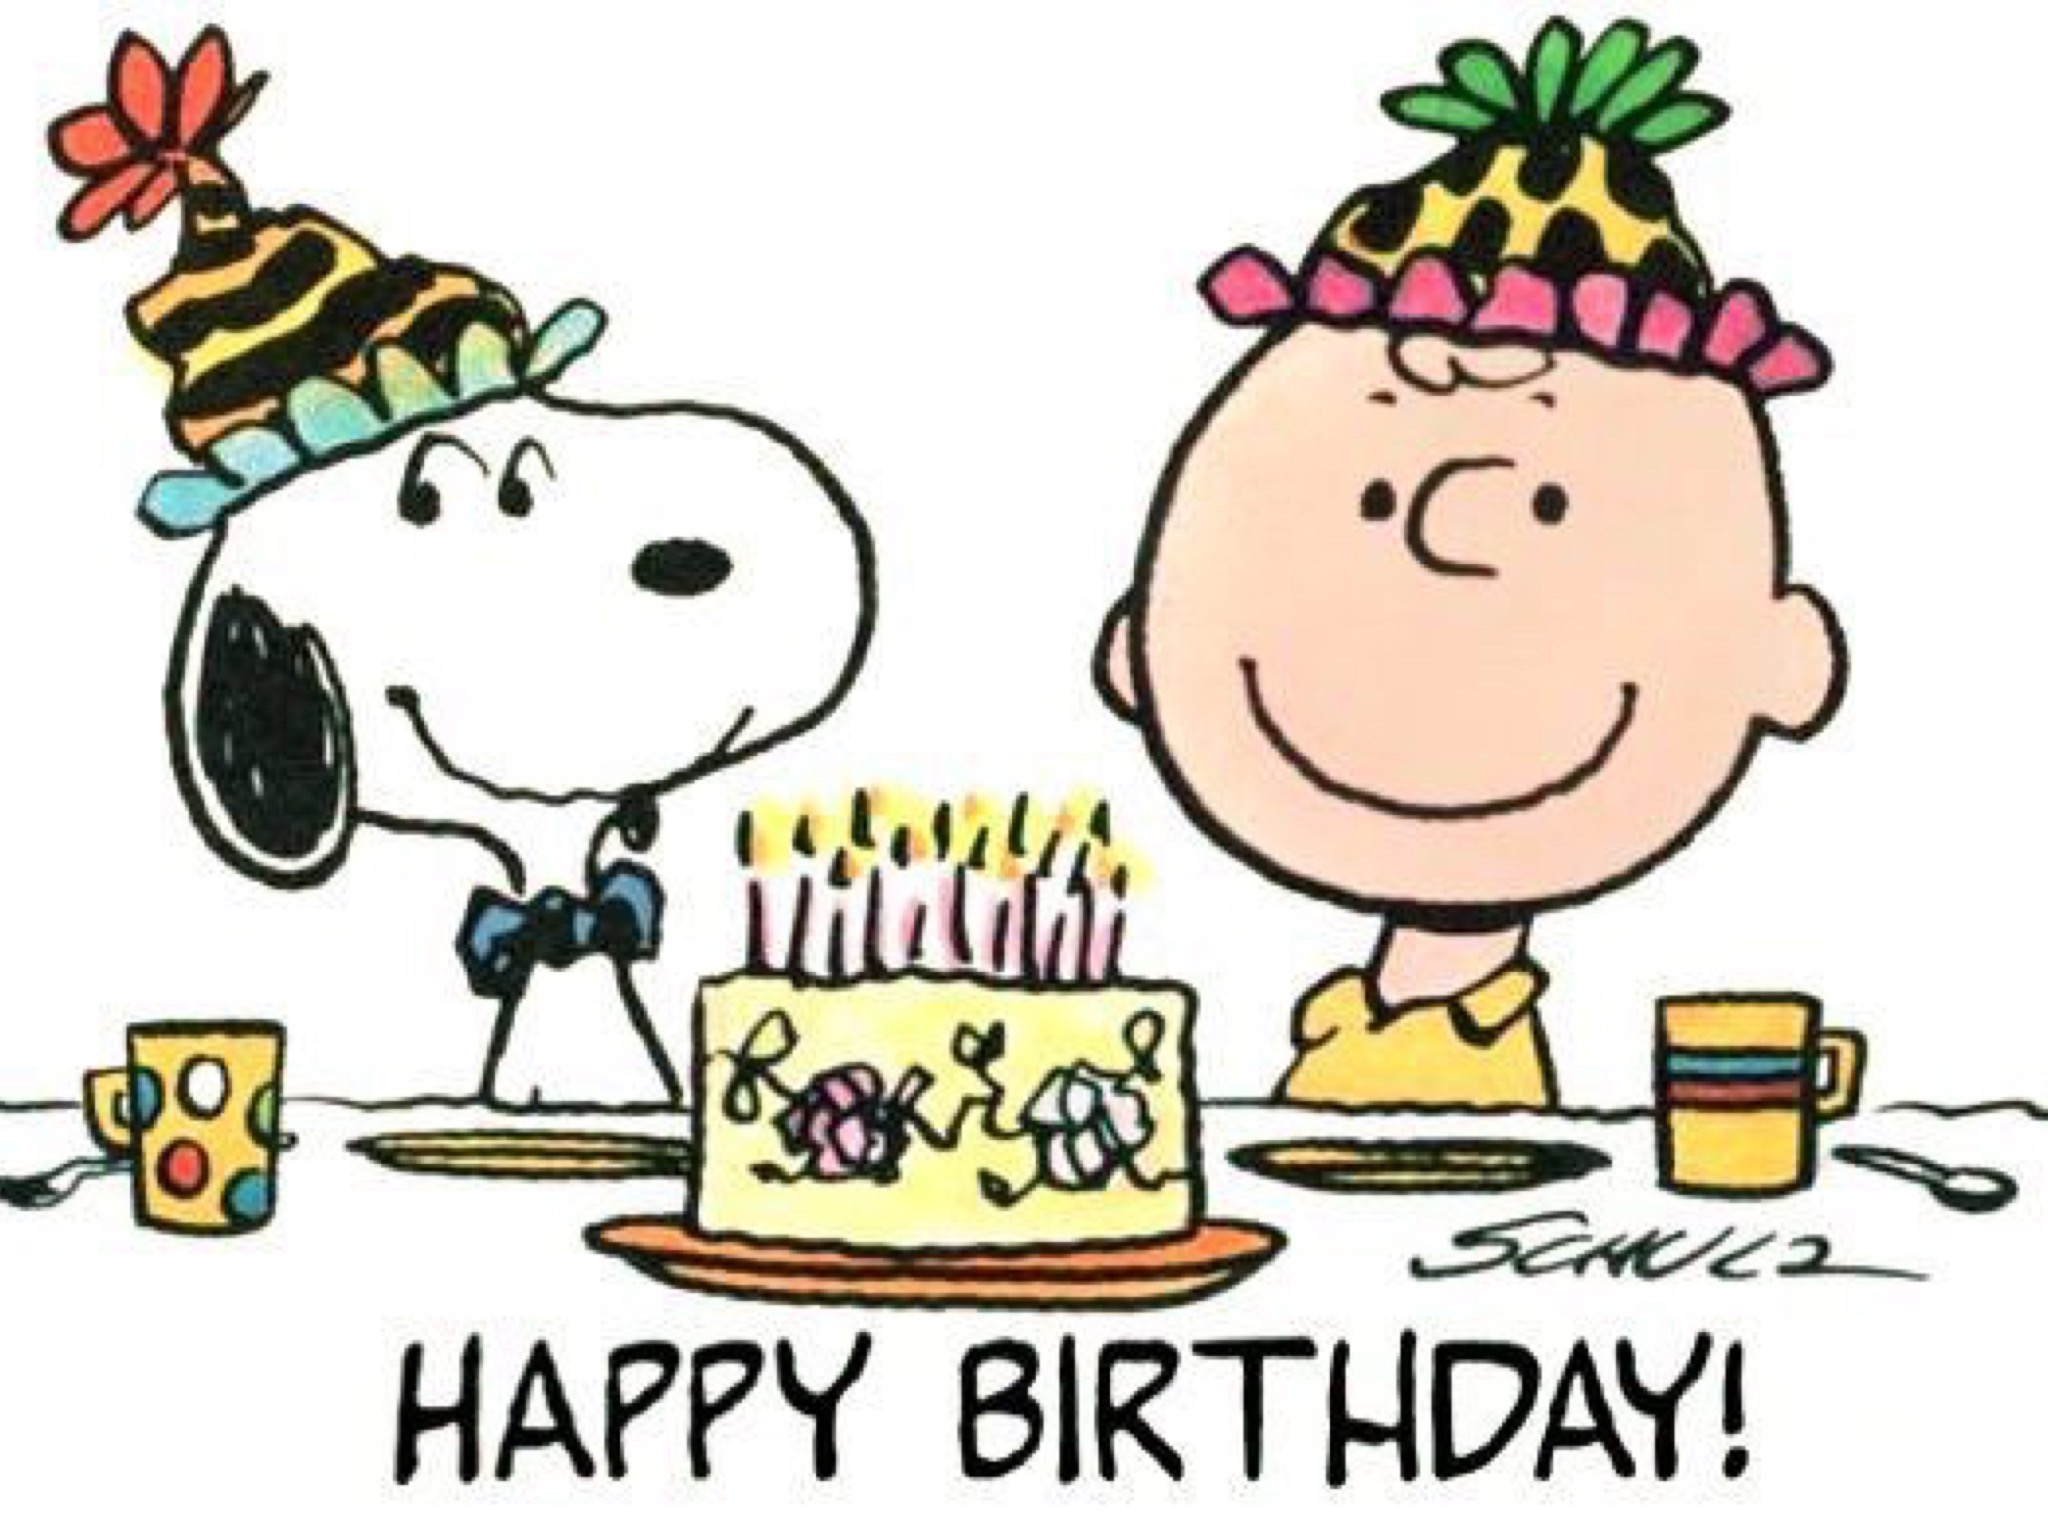 Snoopy clipart cake Birthday Birthday Images About Cake